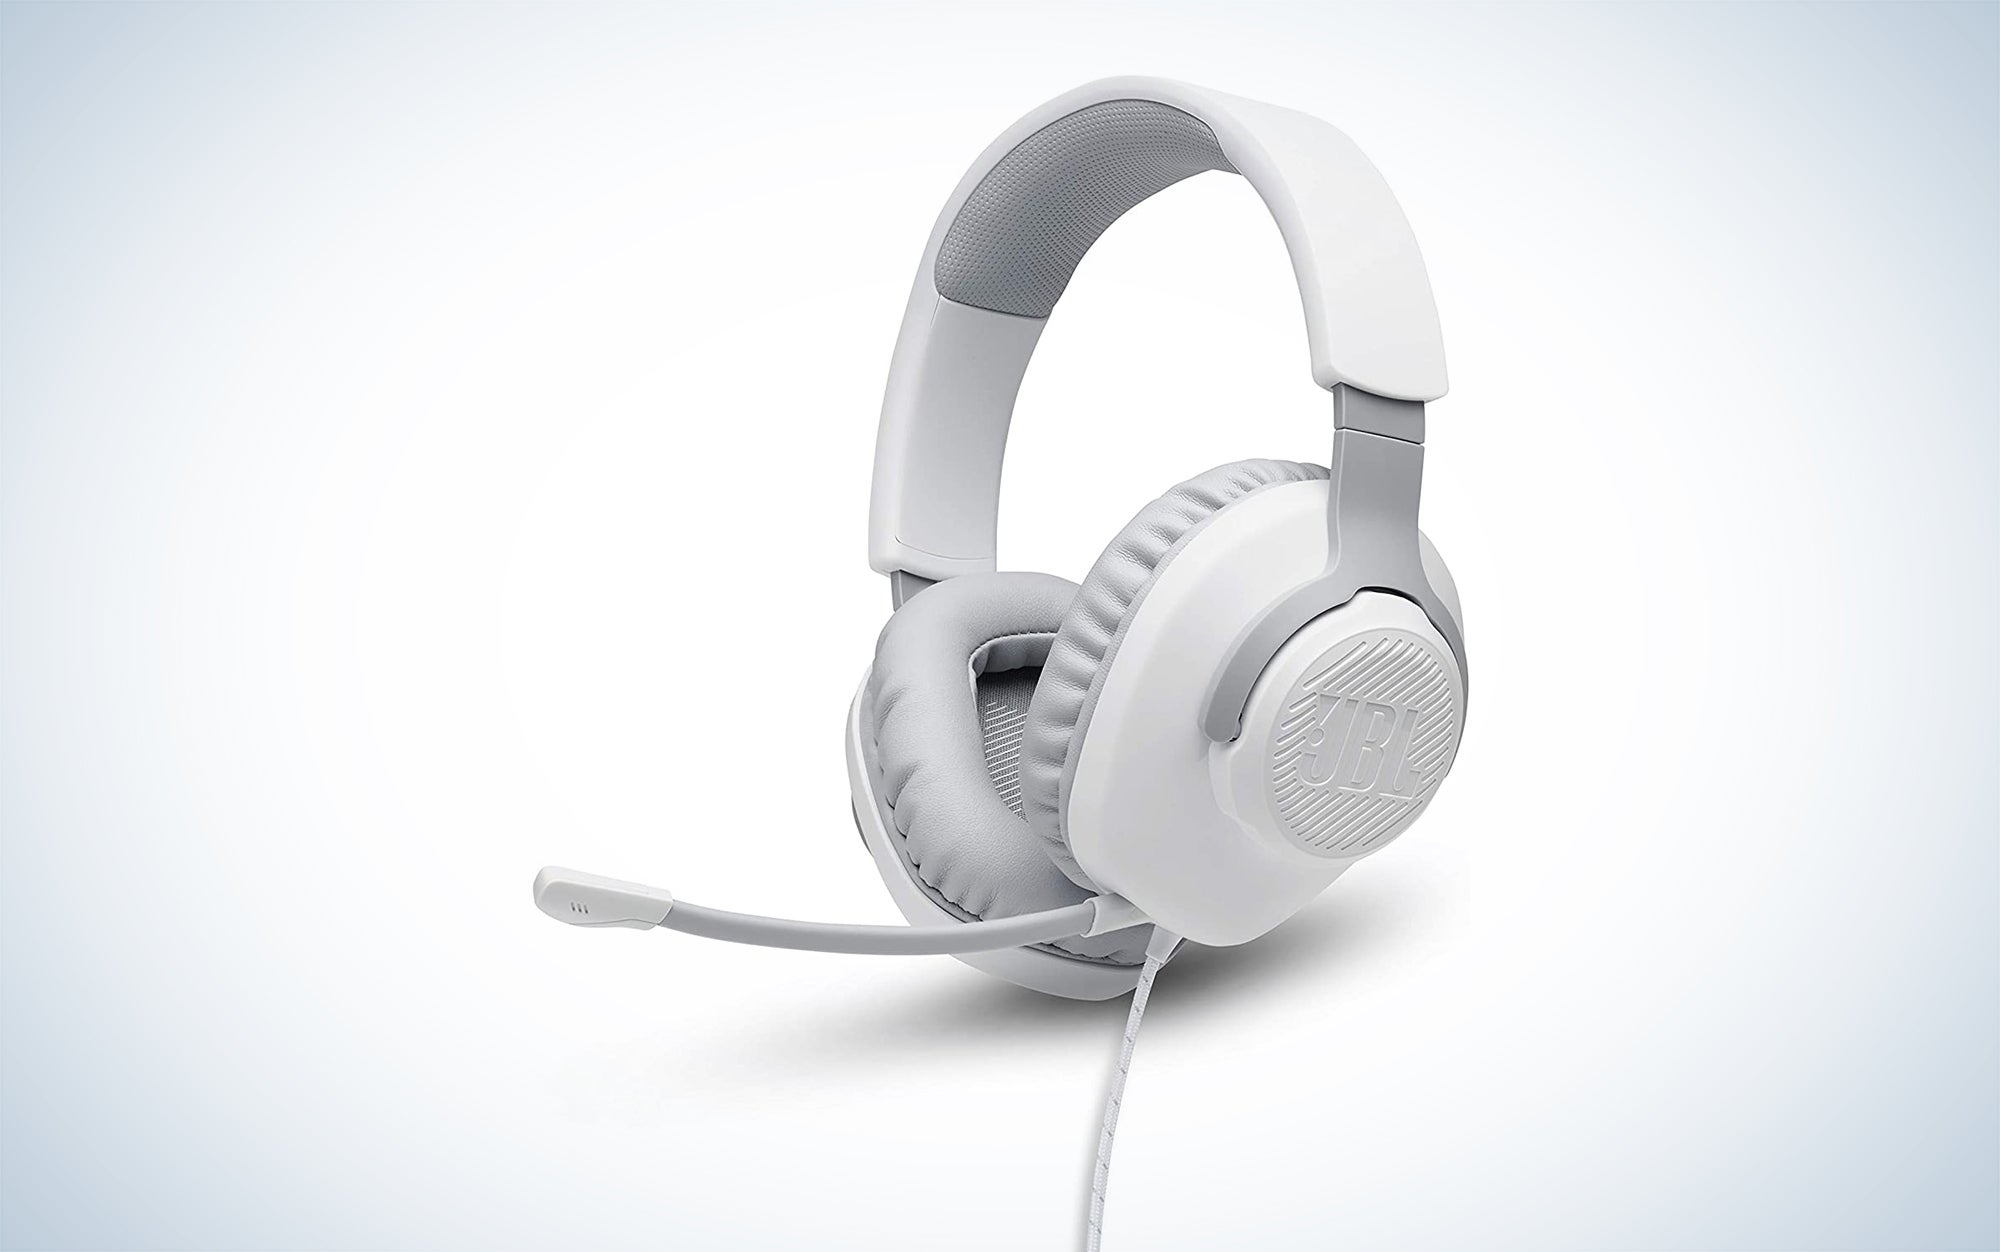 JBL Quantum 100 is one of the best lightweight gaming headsets that you can buy.